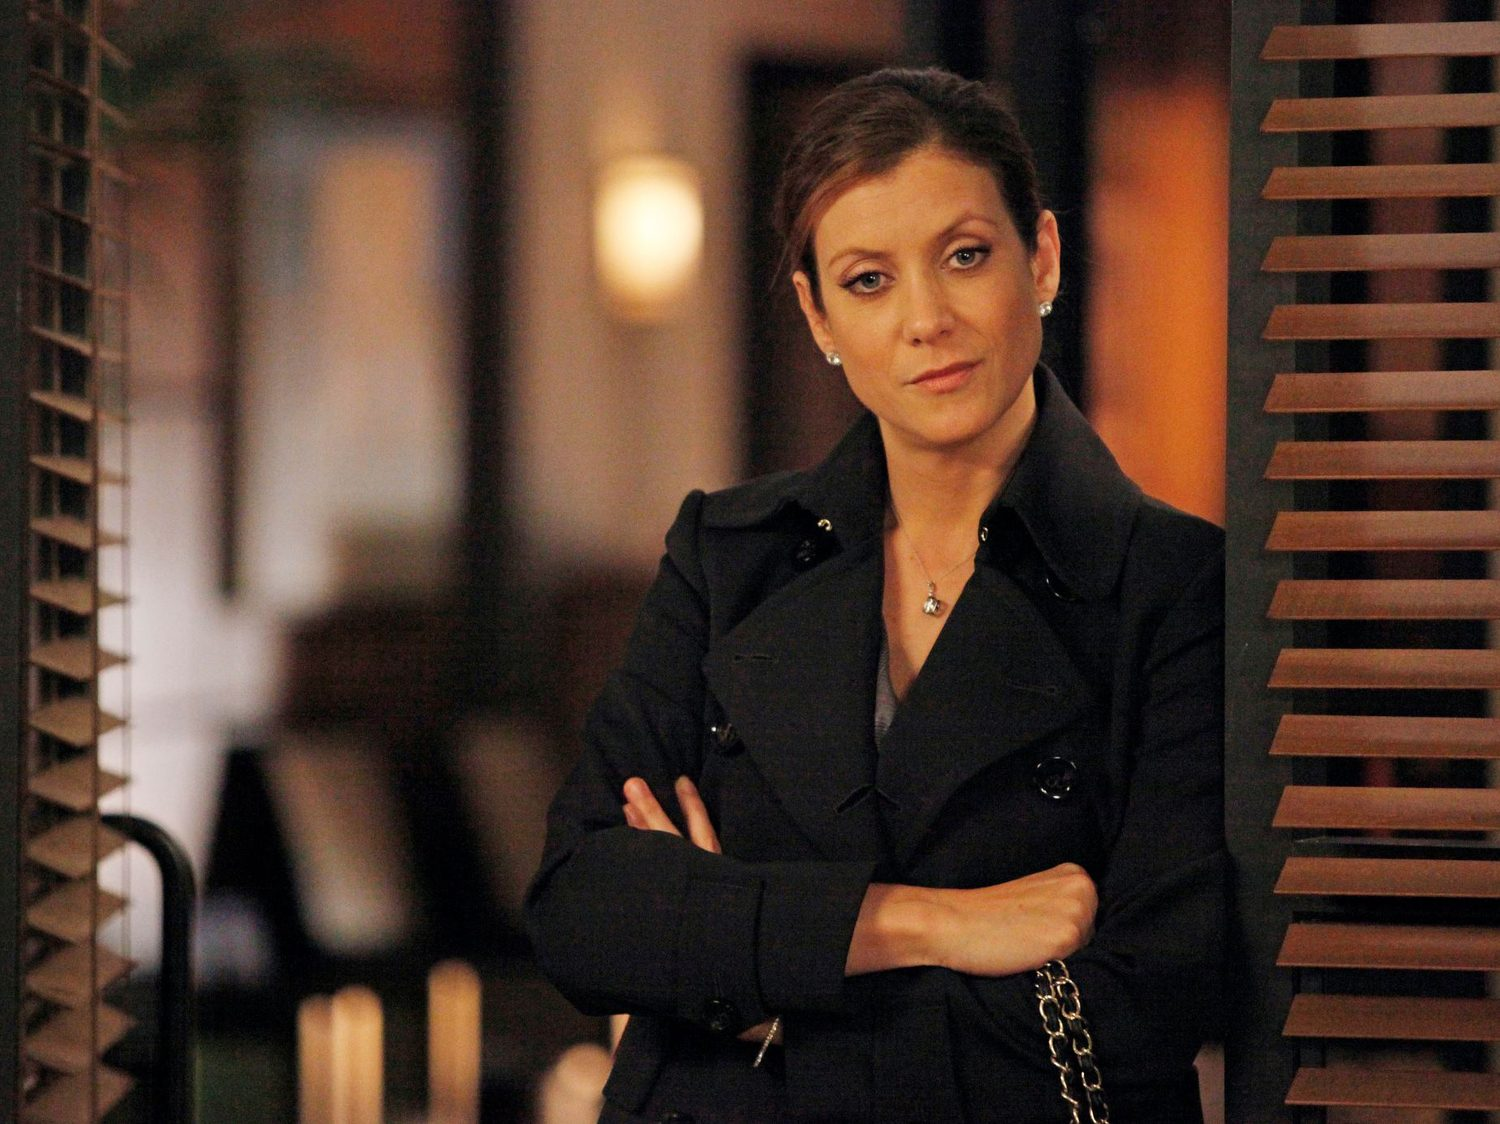 Grey's Anatomy Quotes - Addison Montgomery